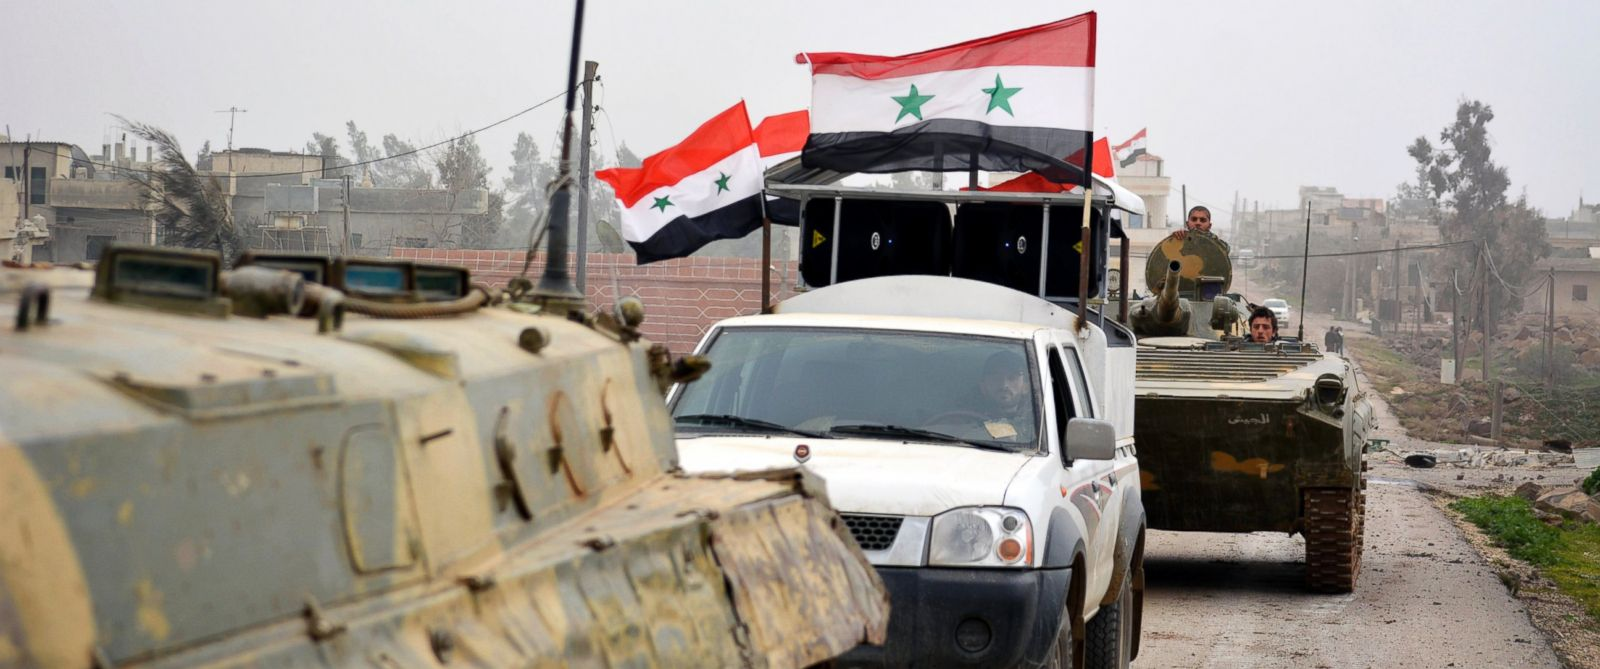 PHOTO: Fighters loyal to Syrias President Bashar Al-Assad ride on military vehicles and tanks after regaining control of Deir al-Adas, a town south of Damascus, on Feb. 10, 2015.